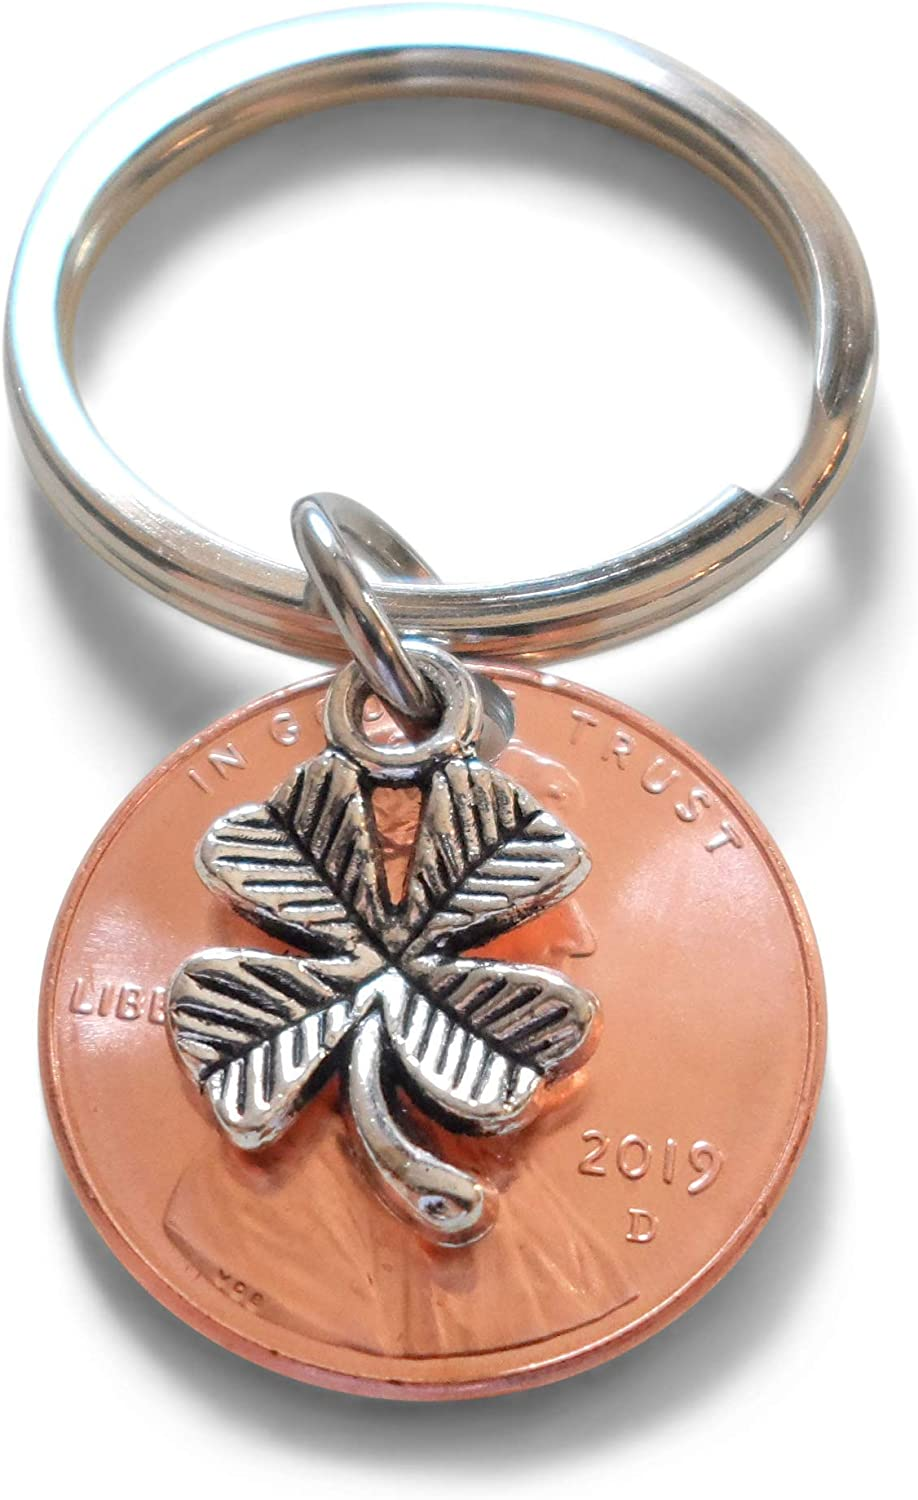 Clover Charm Layered Over 2019 US One Cent Penny Keychain; 2 Year Anniversary Gift, Couples Keychain